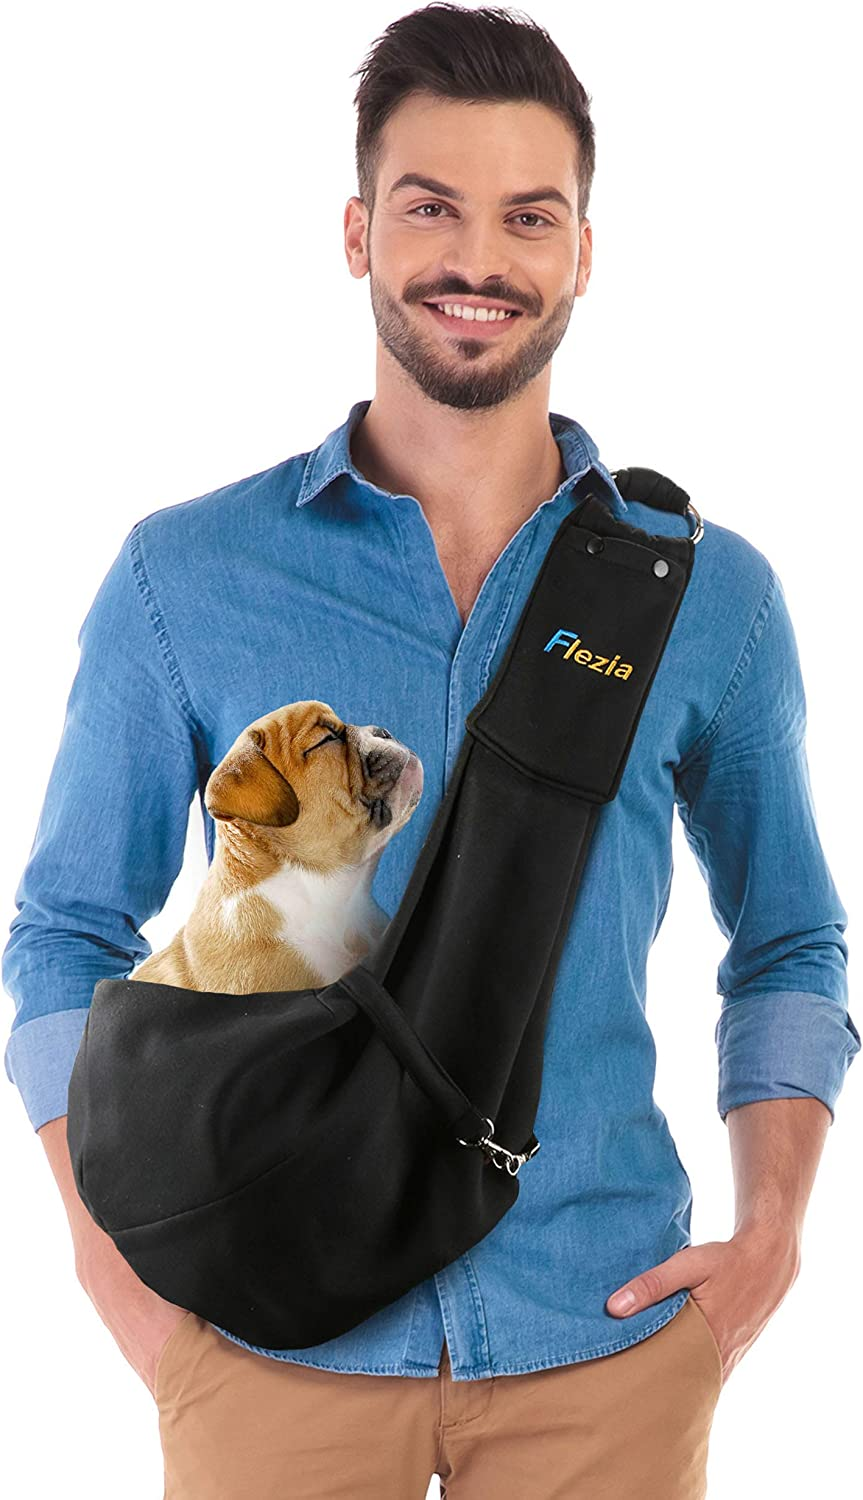 Flezia Pet Sling Carrier for Small Dog or Cat  Black  Pet Blanket and Safety Collar Hook Included  HandsFree Bag Perfect for Walking, Car Seat, Doing Errands, Traveling and Hiking